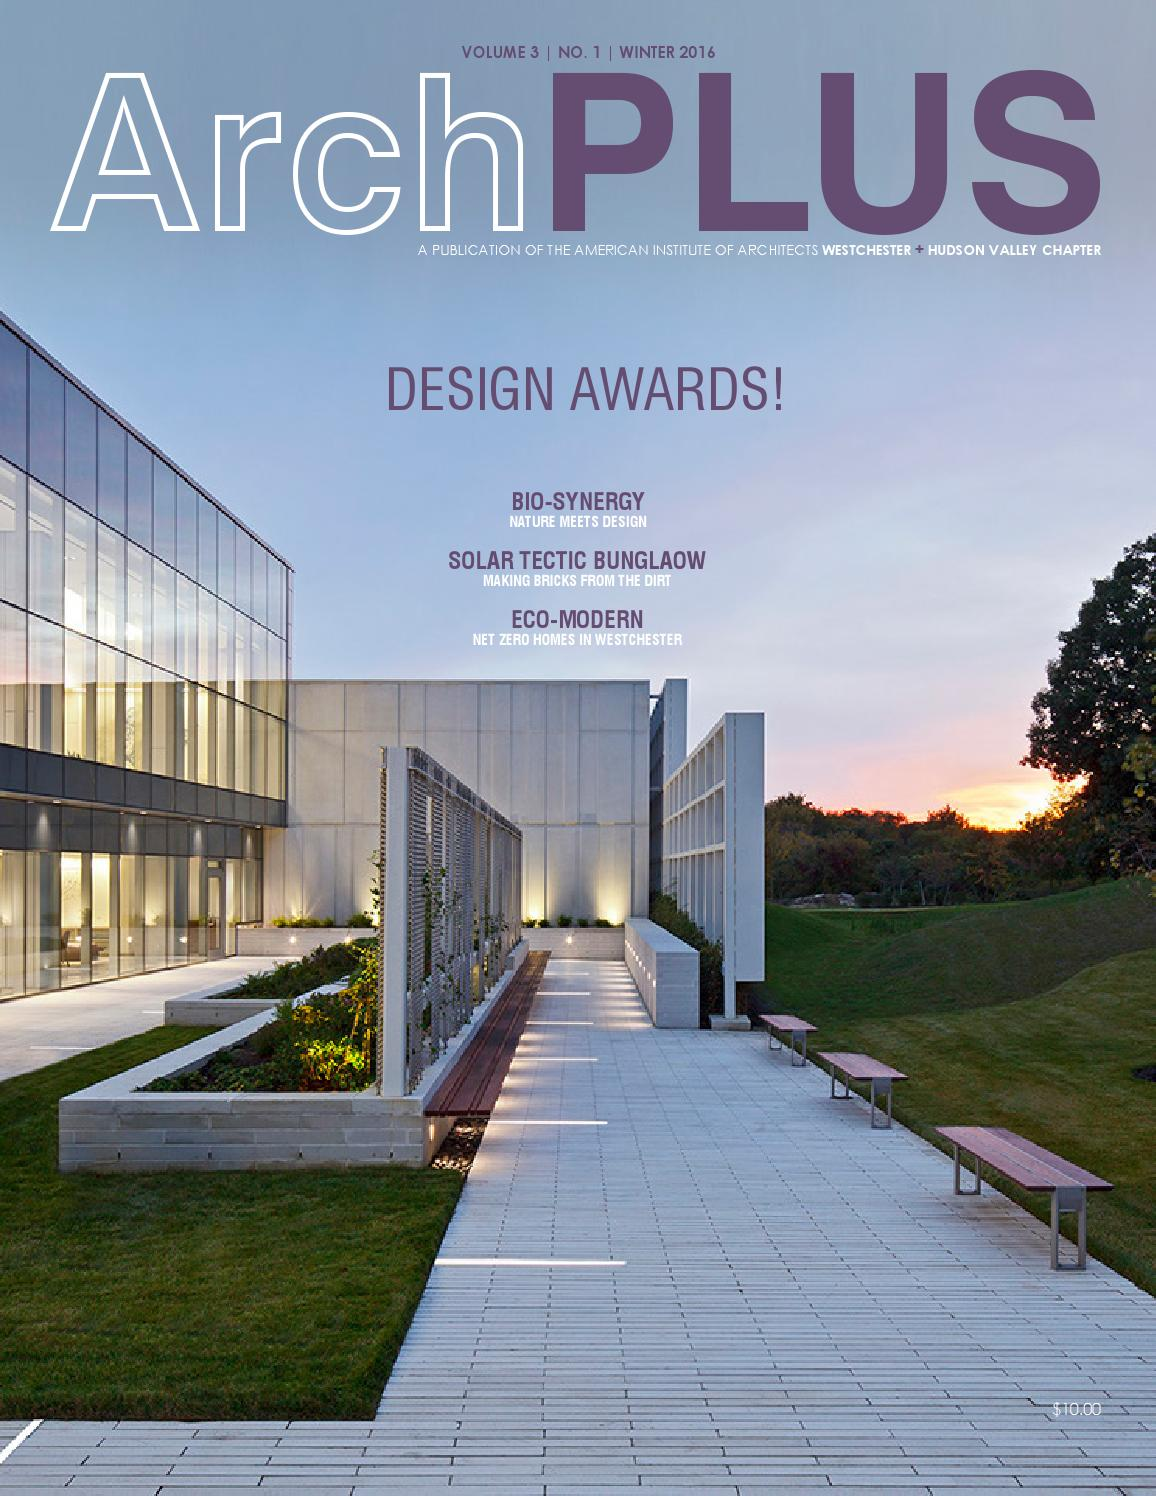 Archplus Winter 2016 Vol 3 No 1 By American Institute Of